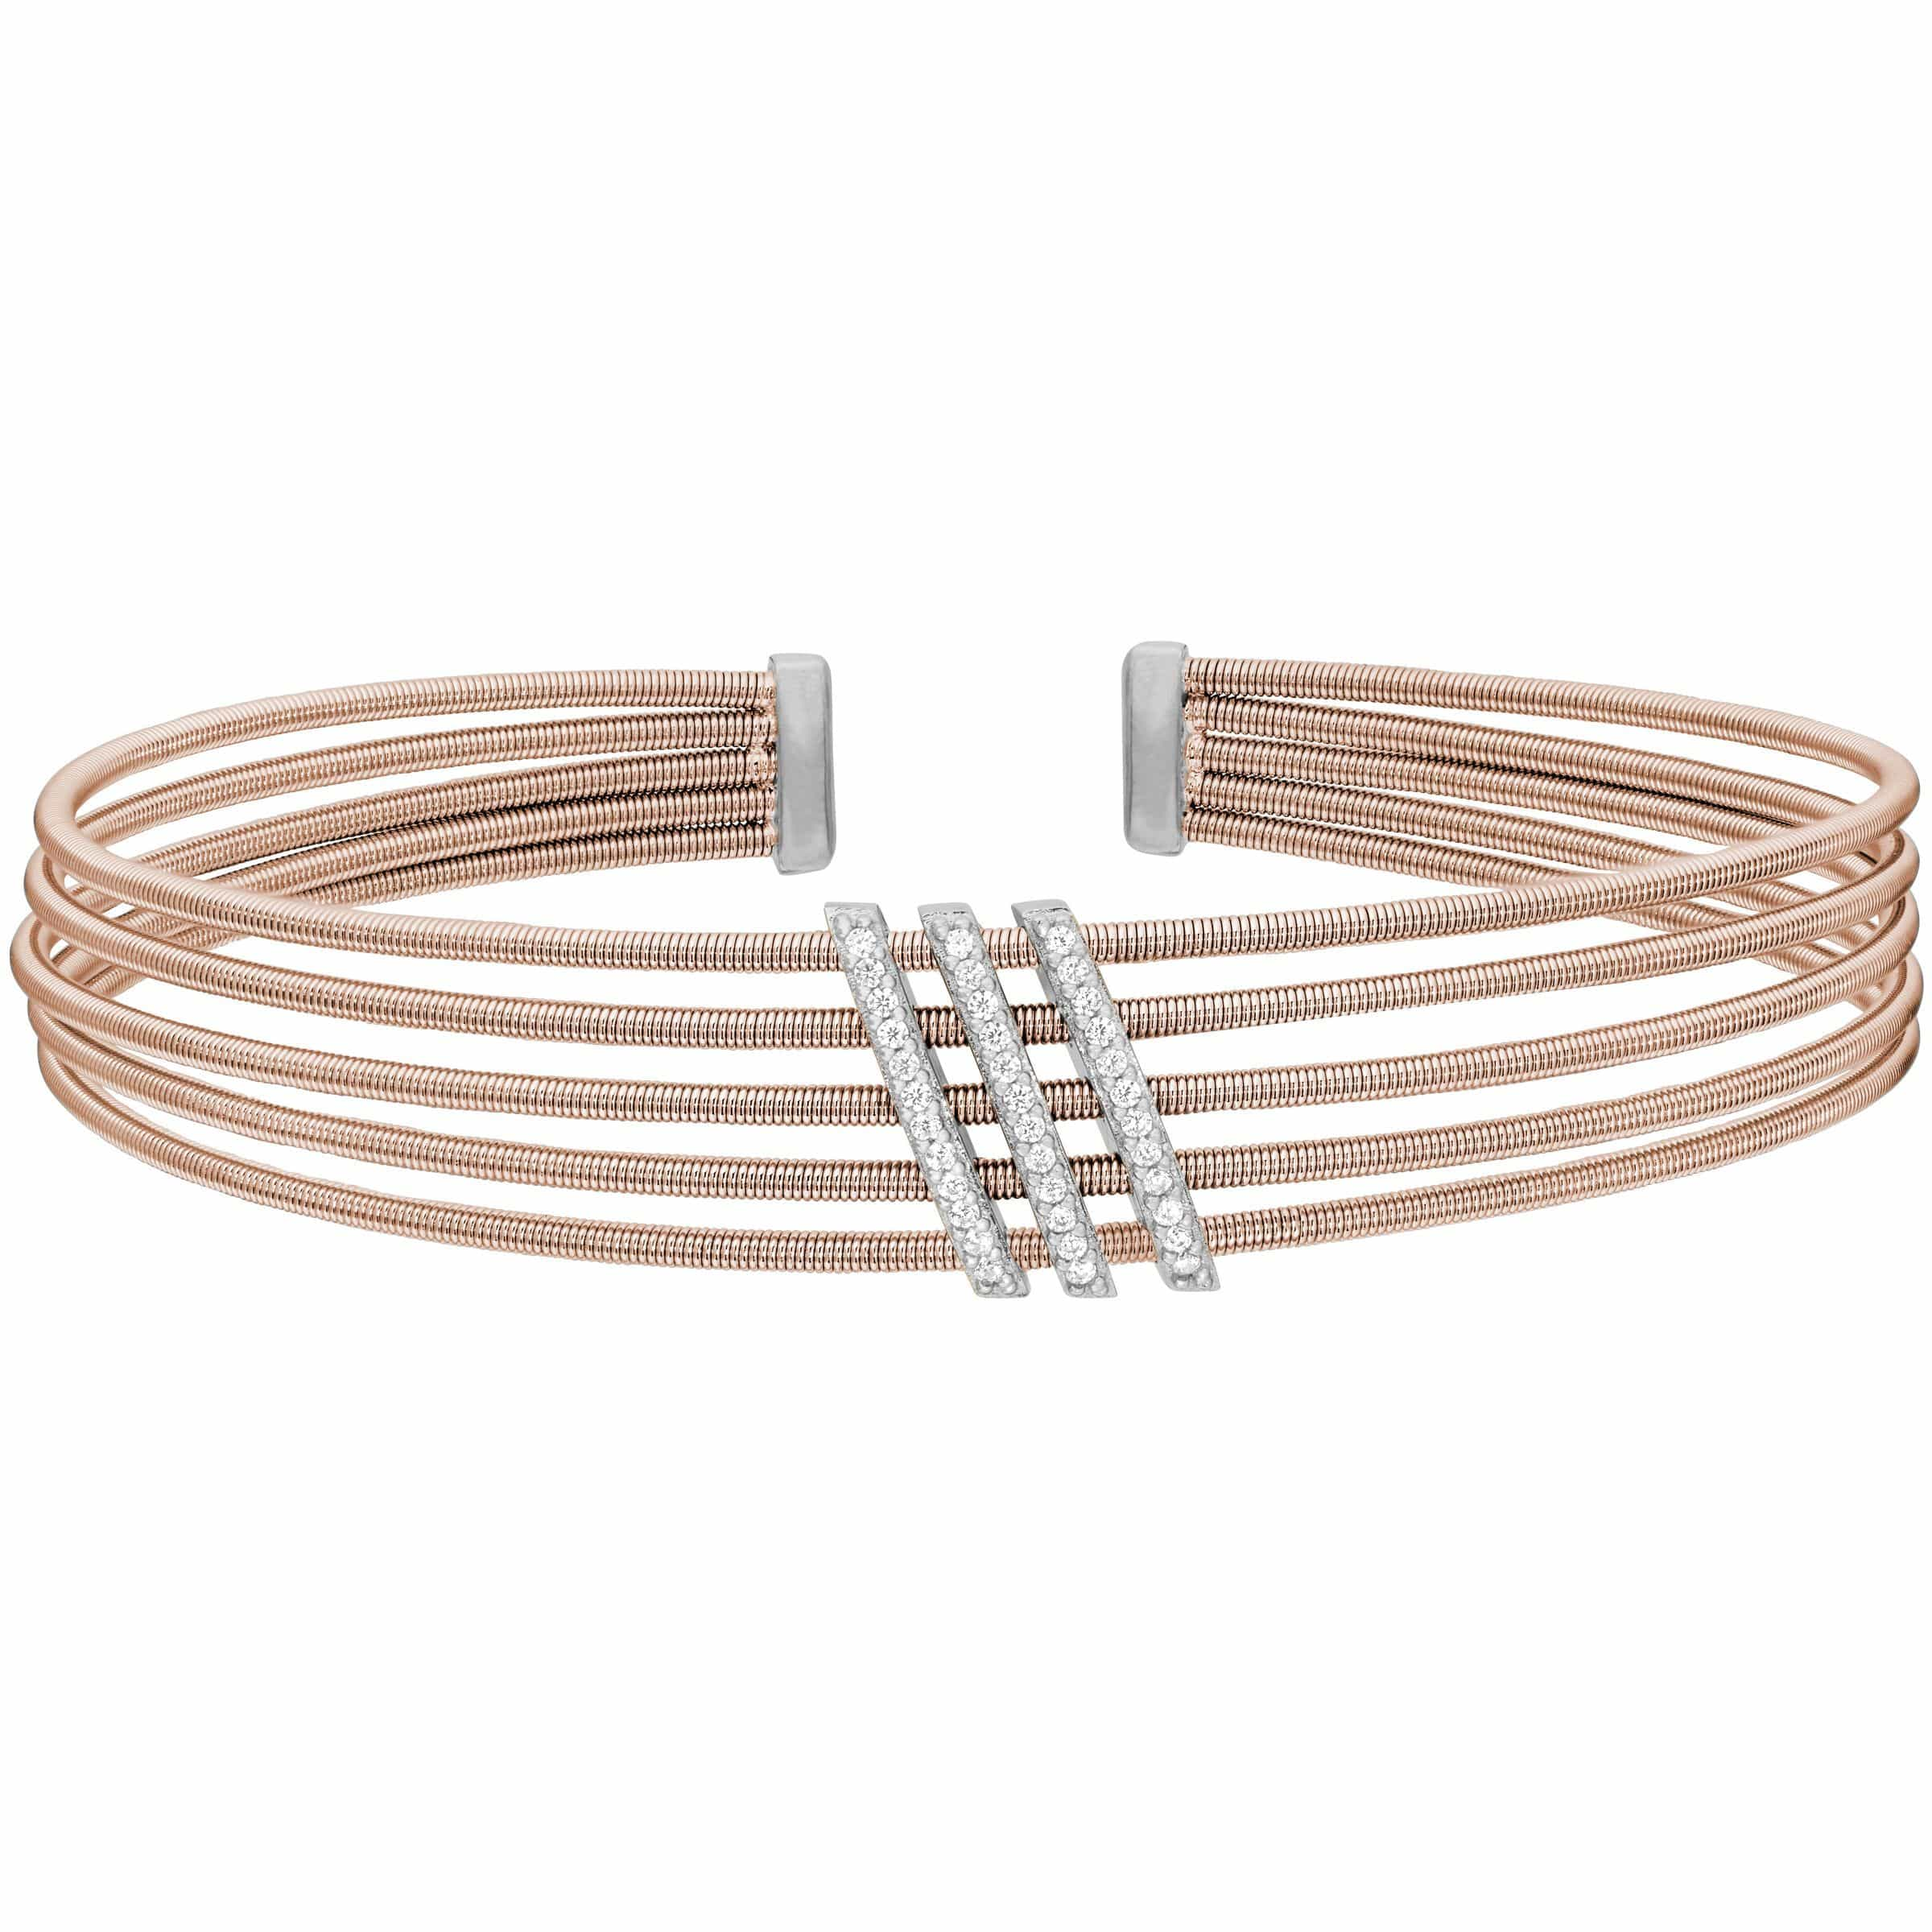 Rose Gold Finish Sterling Silver Multi Cable Cuff Bracelet - LL7034B-RG/RH-Kelly Waters-Renee Taylor Gallery